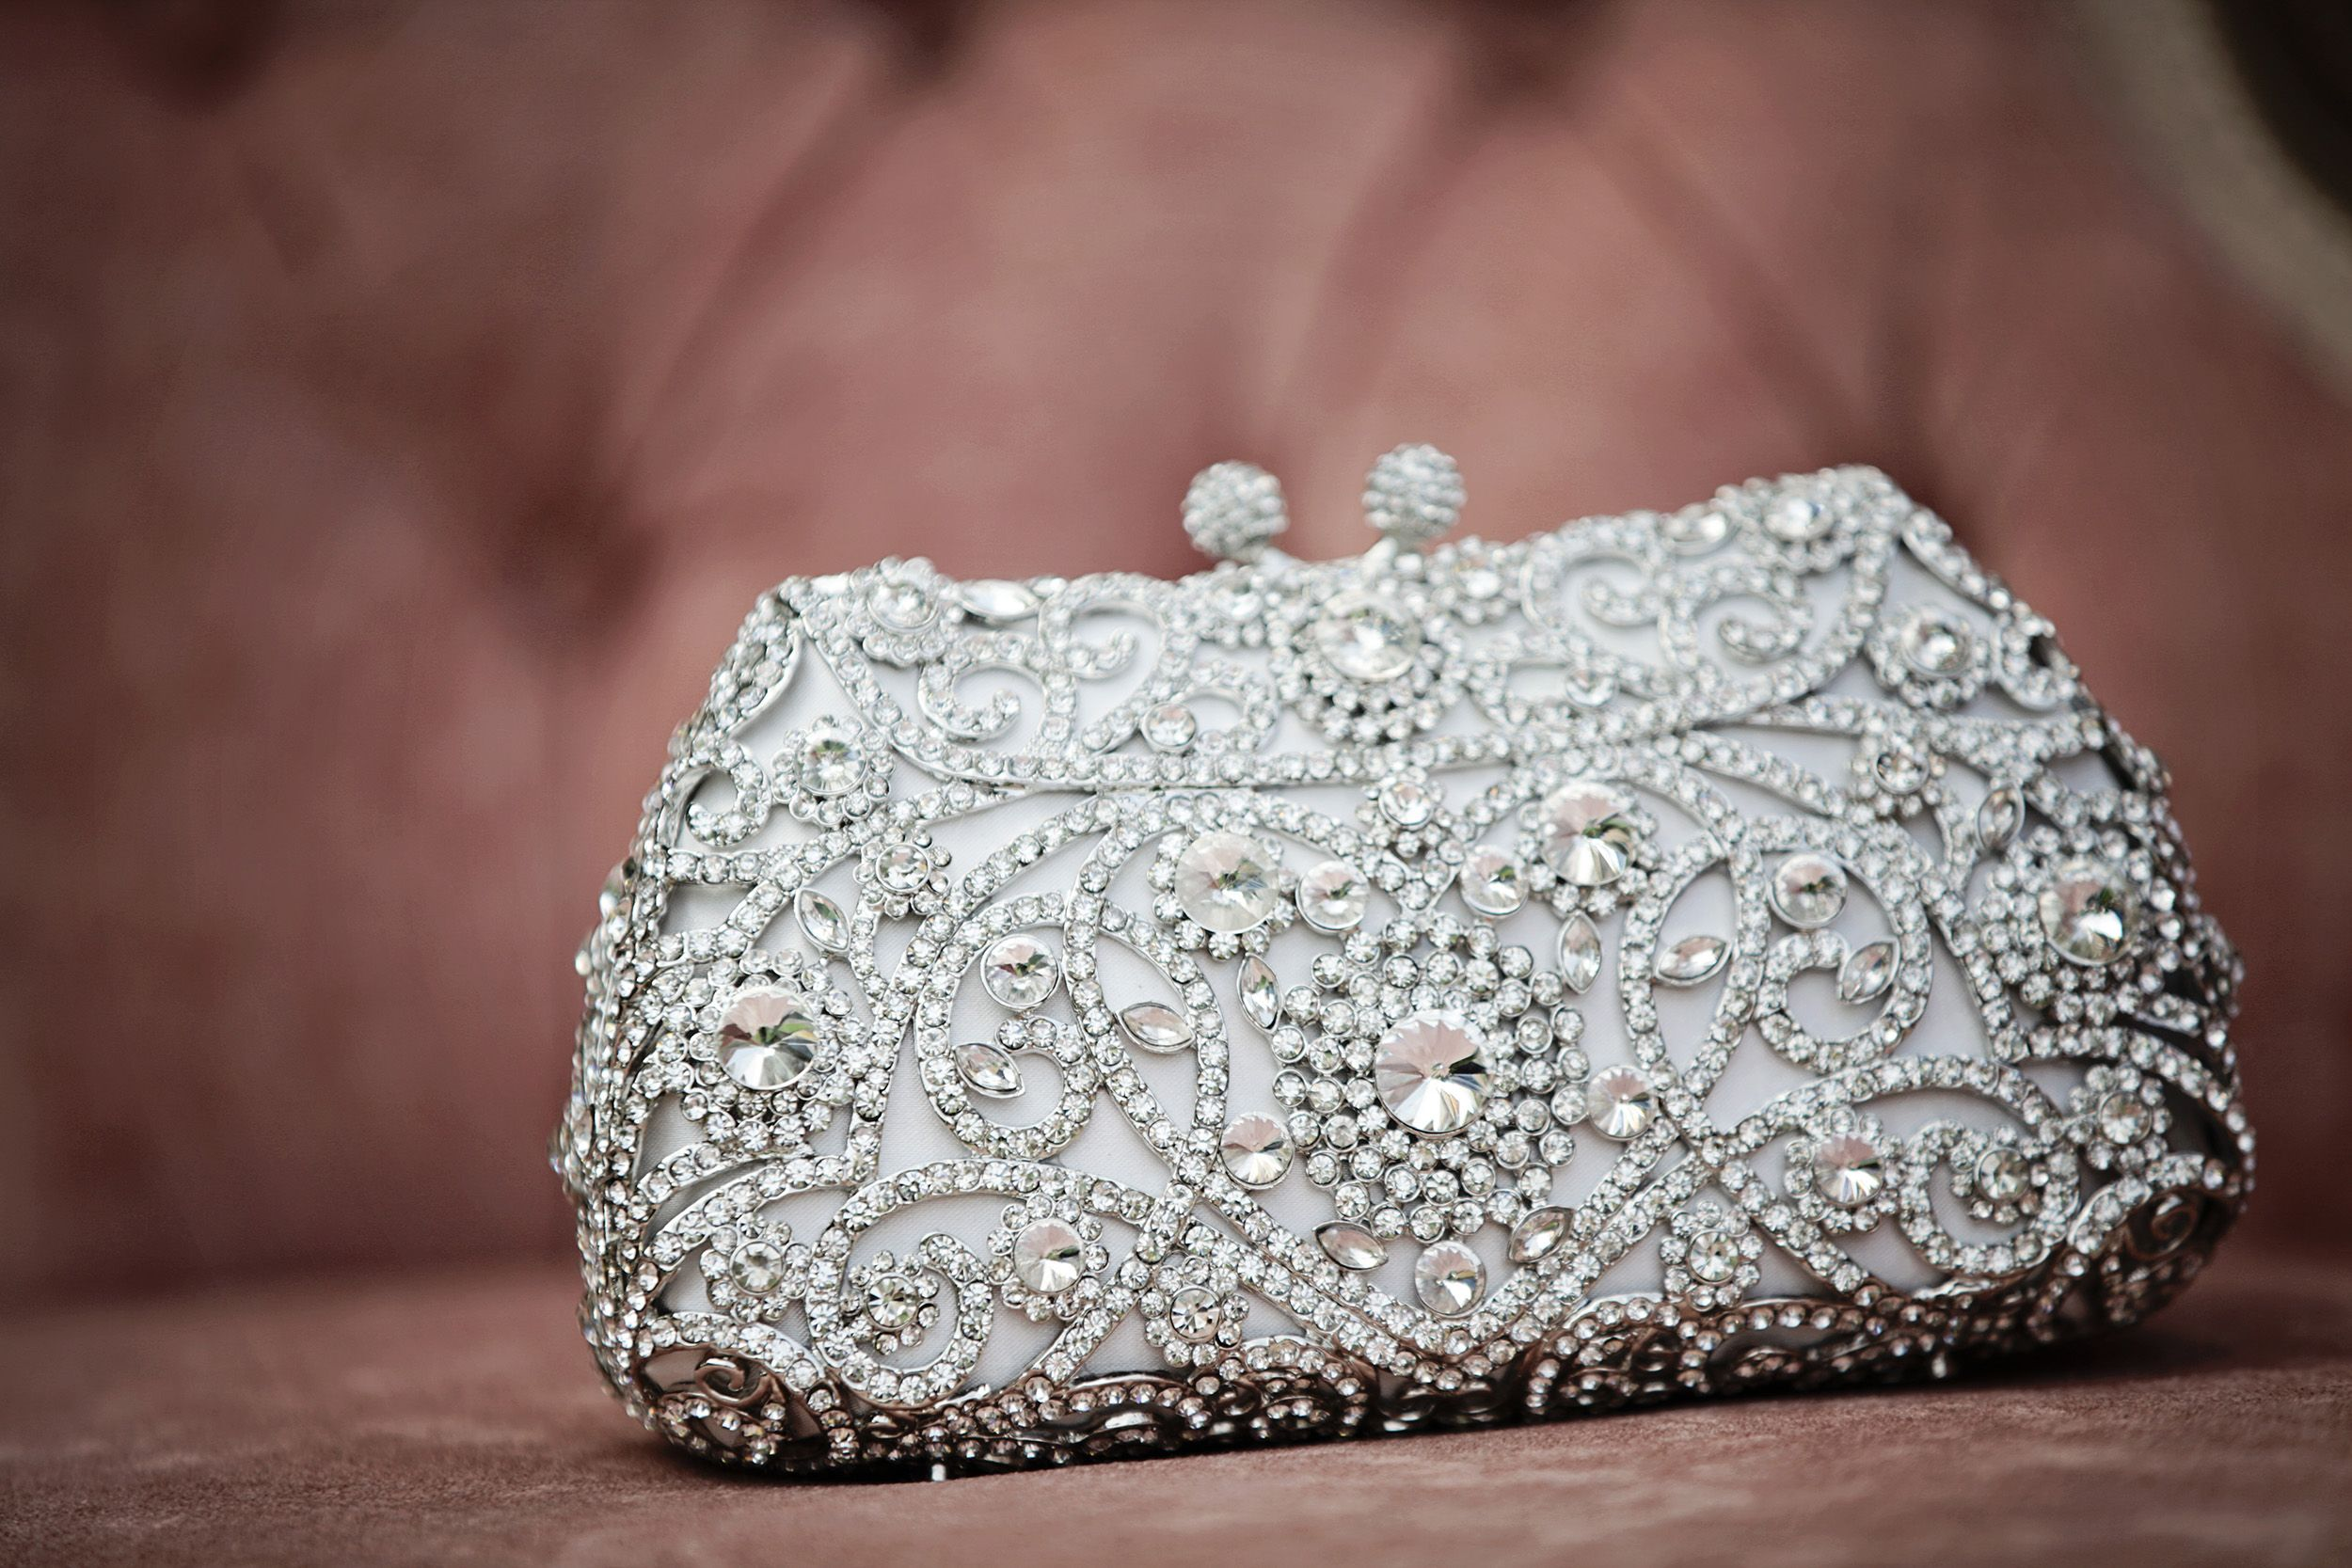 e406e5bf71 Glam vintage clutch for the bride  vintage  vintagewedding  clutch   bridalaccessories  bride